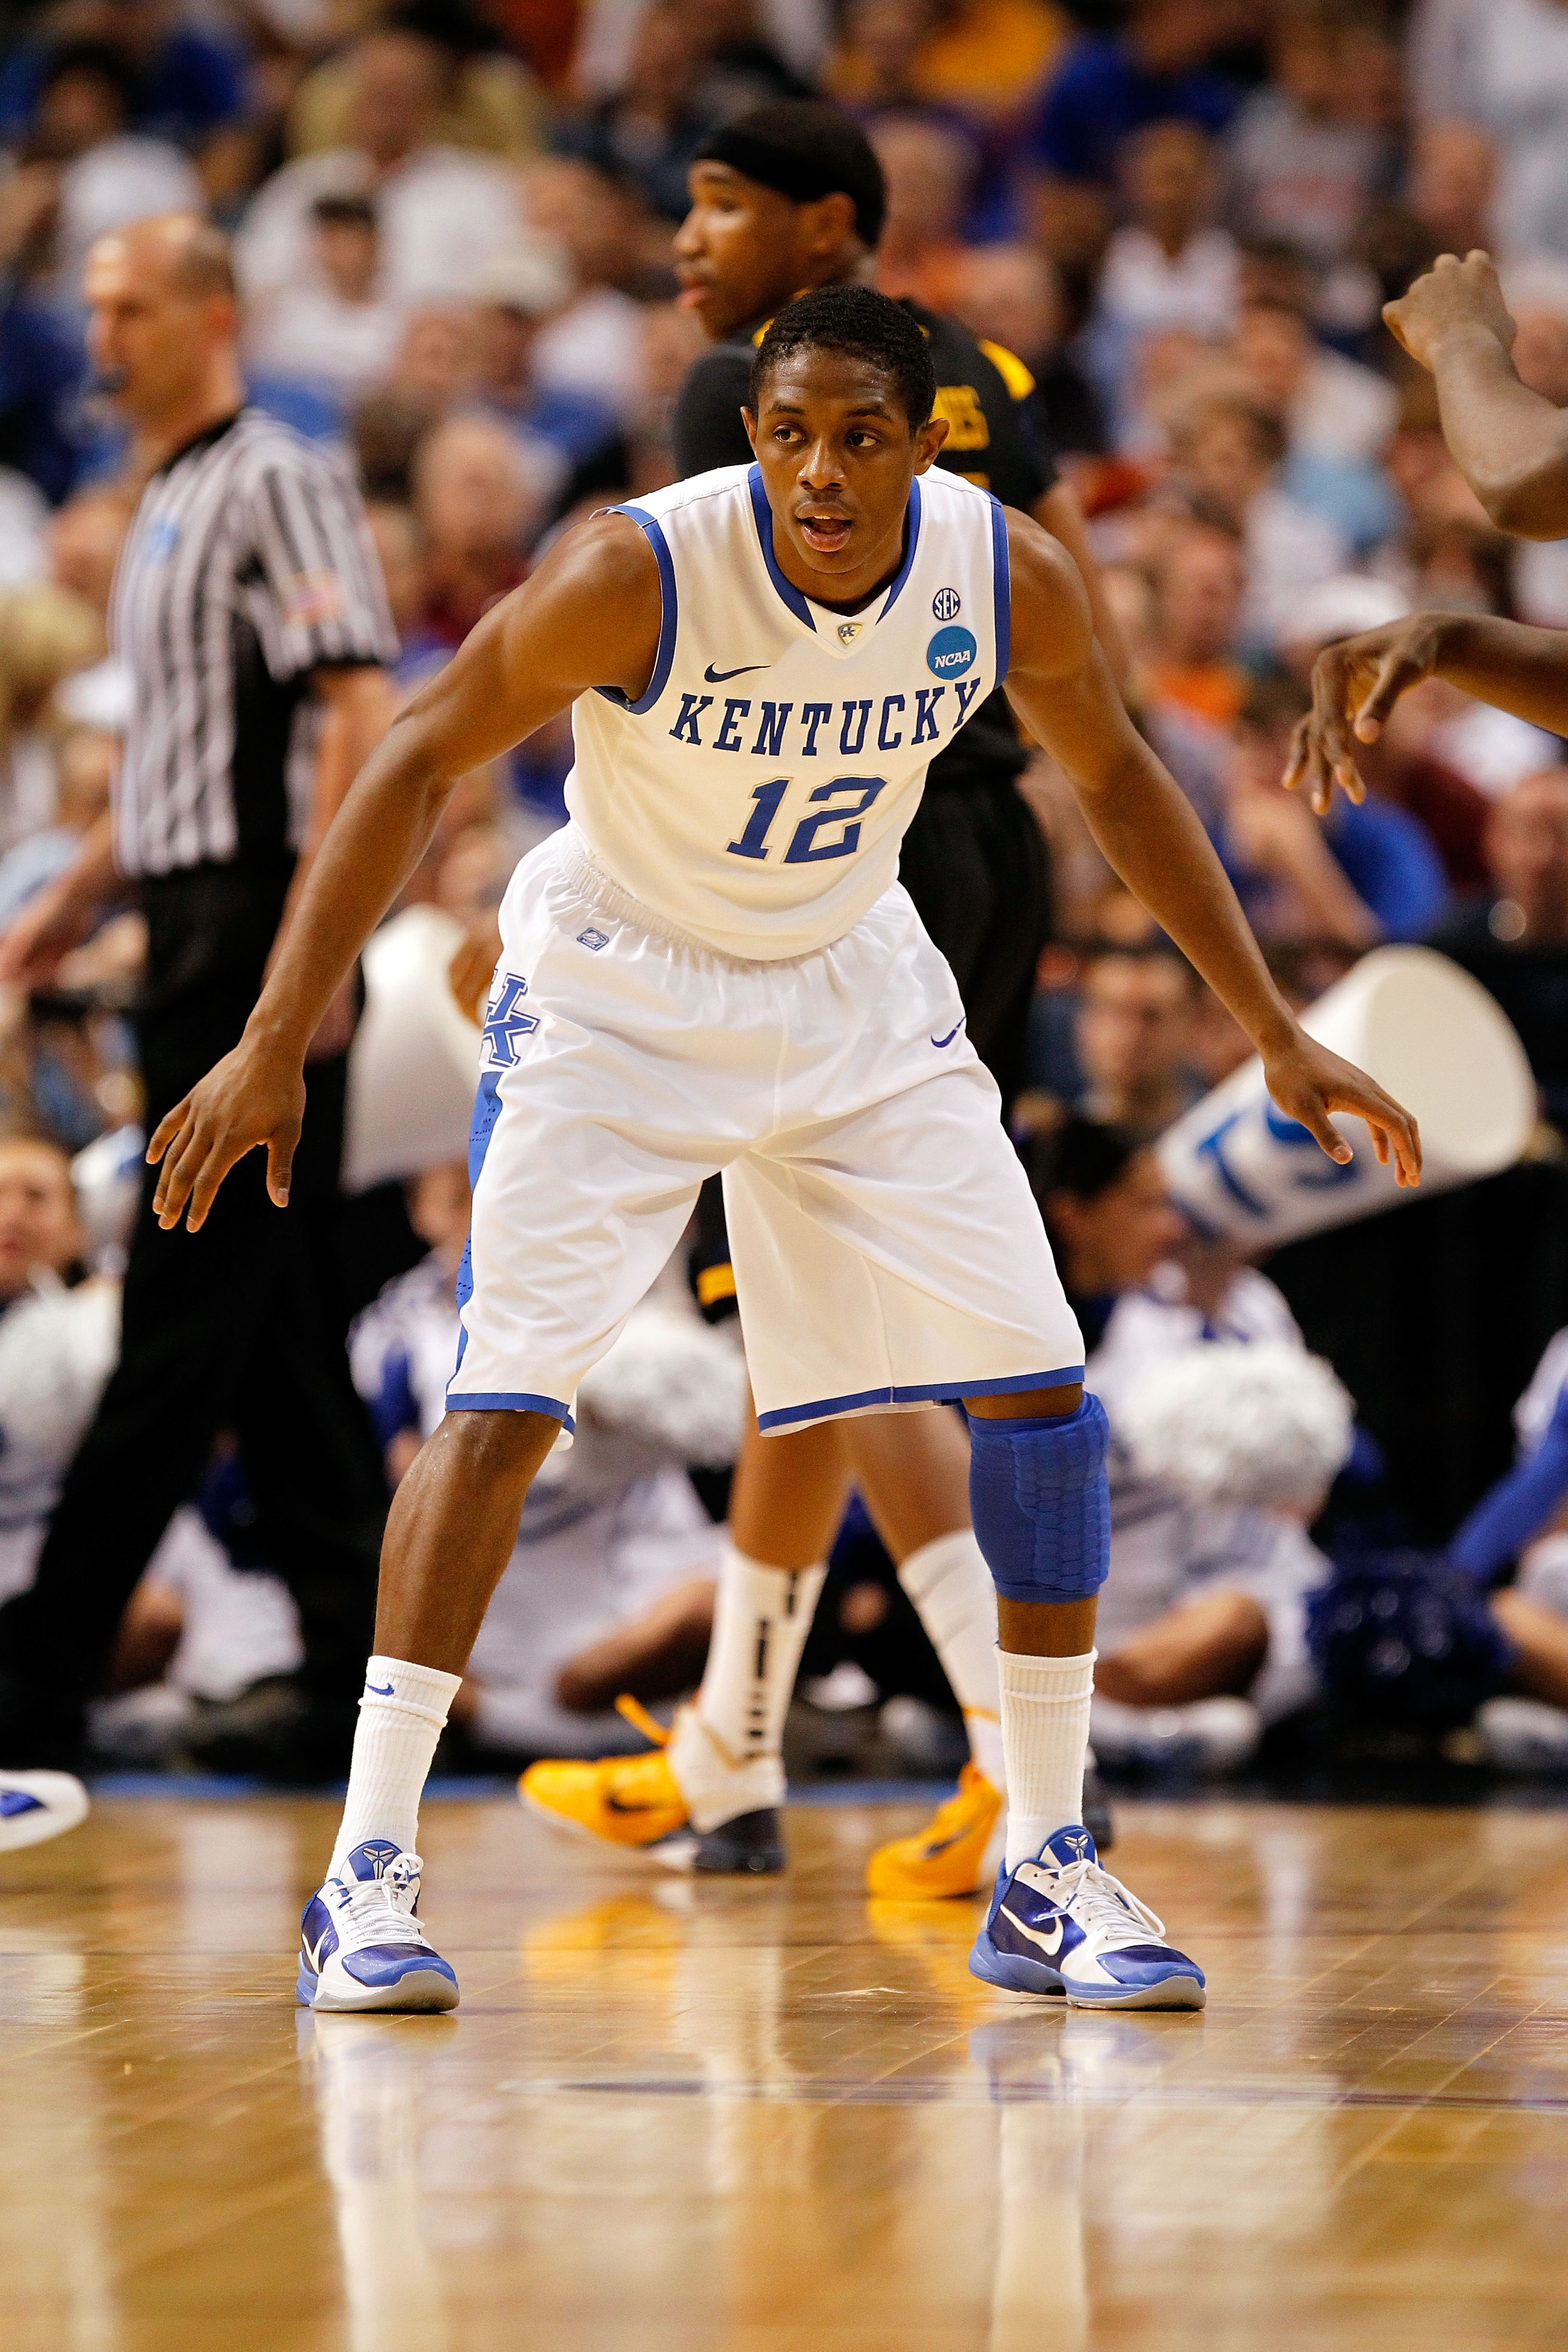 TAMPA, FL - MARCH 19:  Brandon Knight #12 of the Kentucky Wildcats defends against the West Virginia Mountaineers during the third round of the 2011 NCAA men's basketball tournament at St. Pete Times Forum on March 19, 2011 in Tampa, Florida. Kentucky won